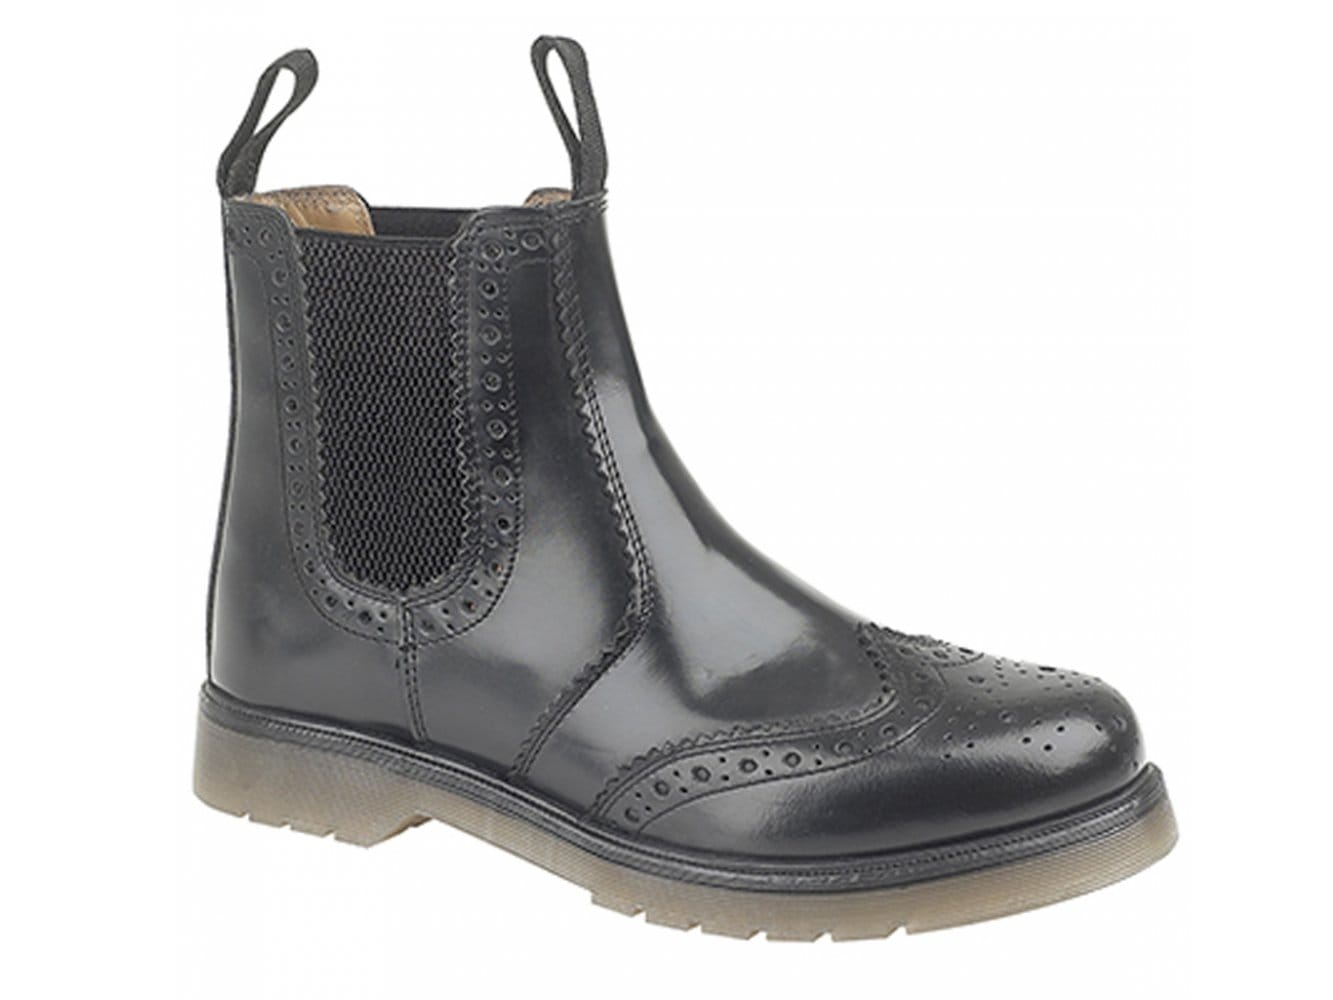 db427909aa3 Grafters DUDLEY Mens Leather Brogue Air Cushion Sole Dealer Boots Black